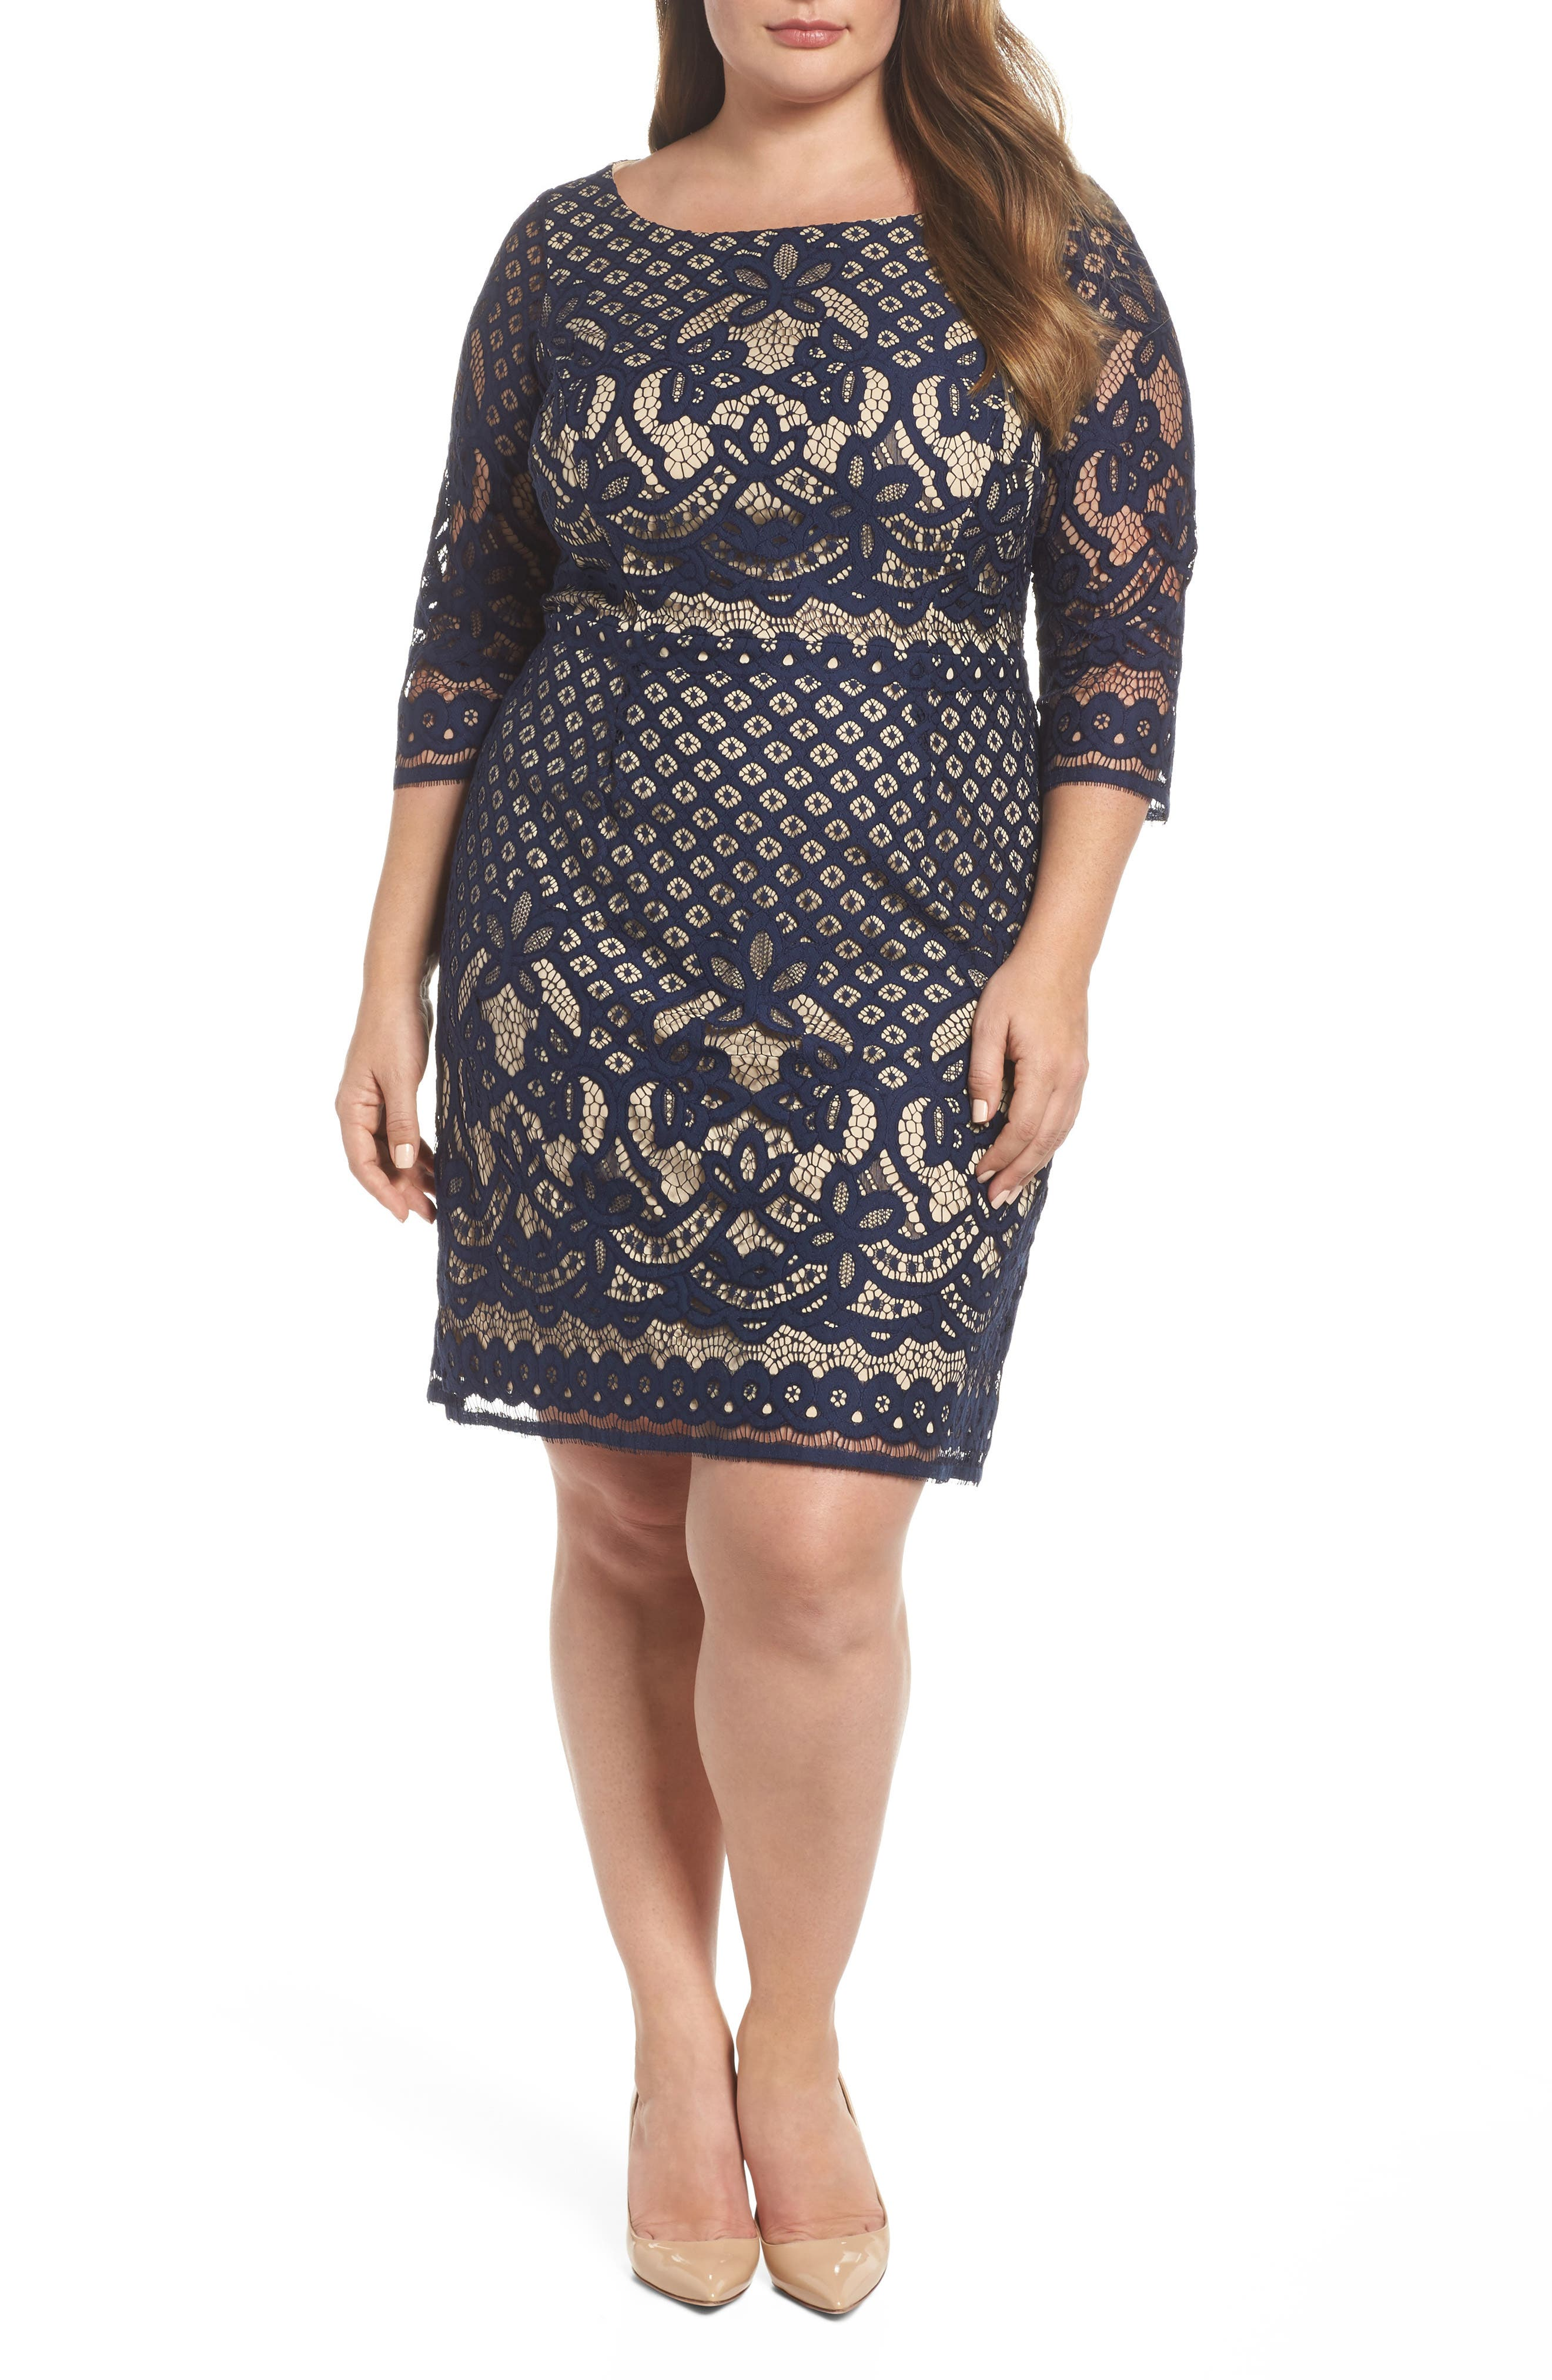 Gabby skye lace fit-and-flare dress